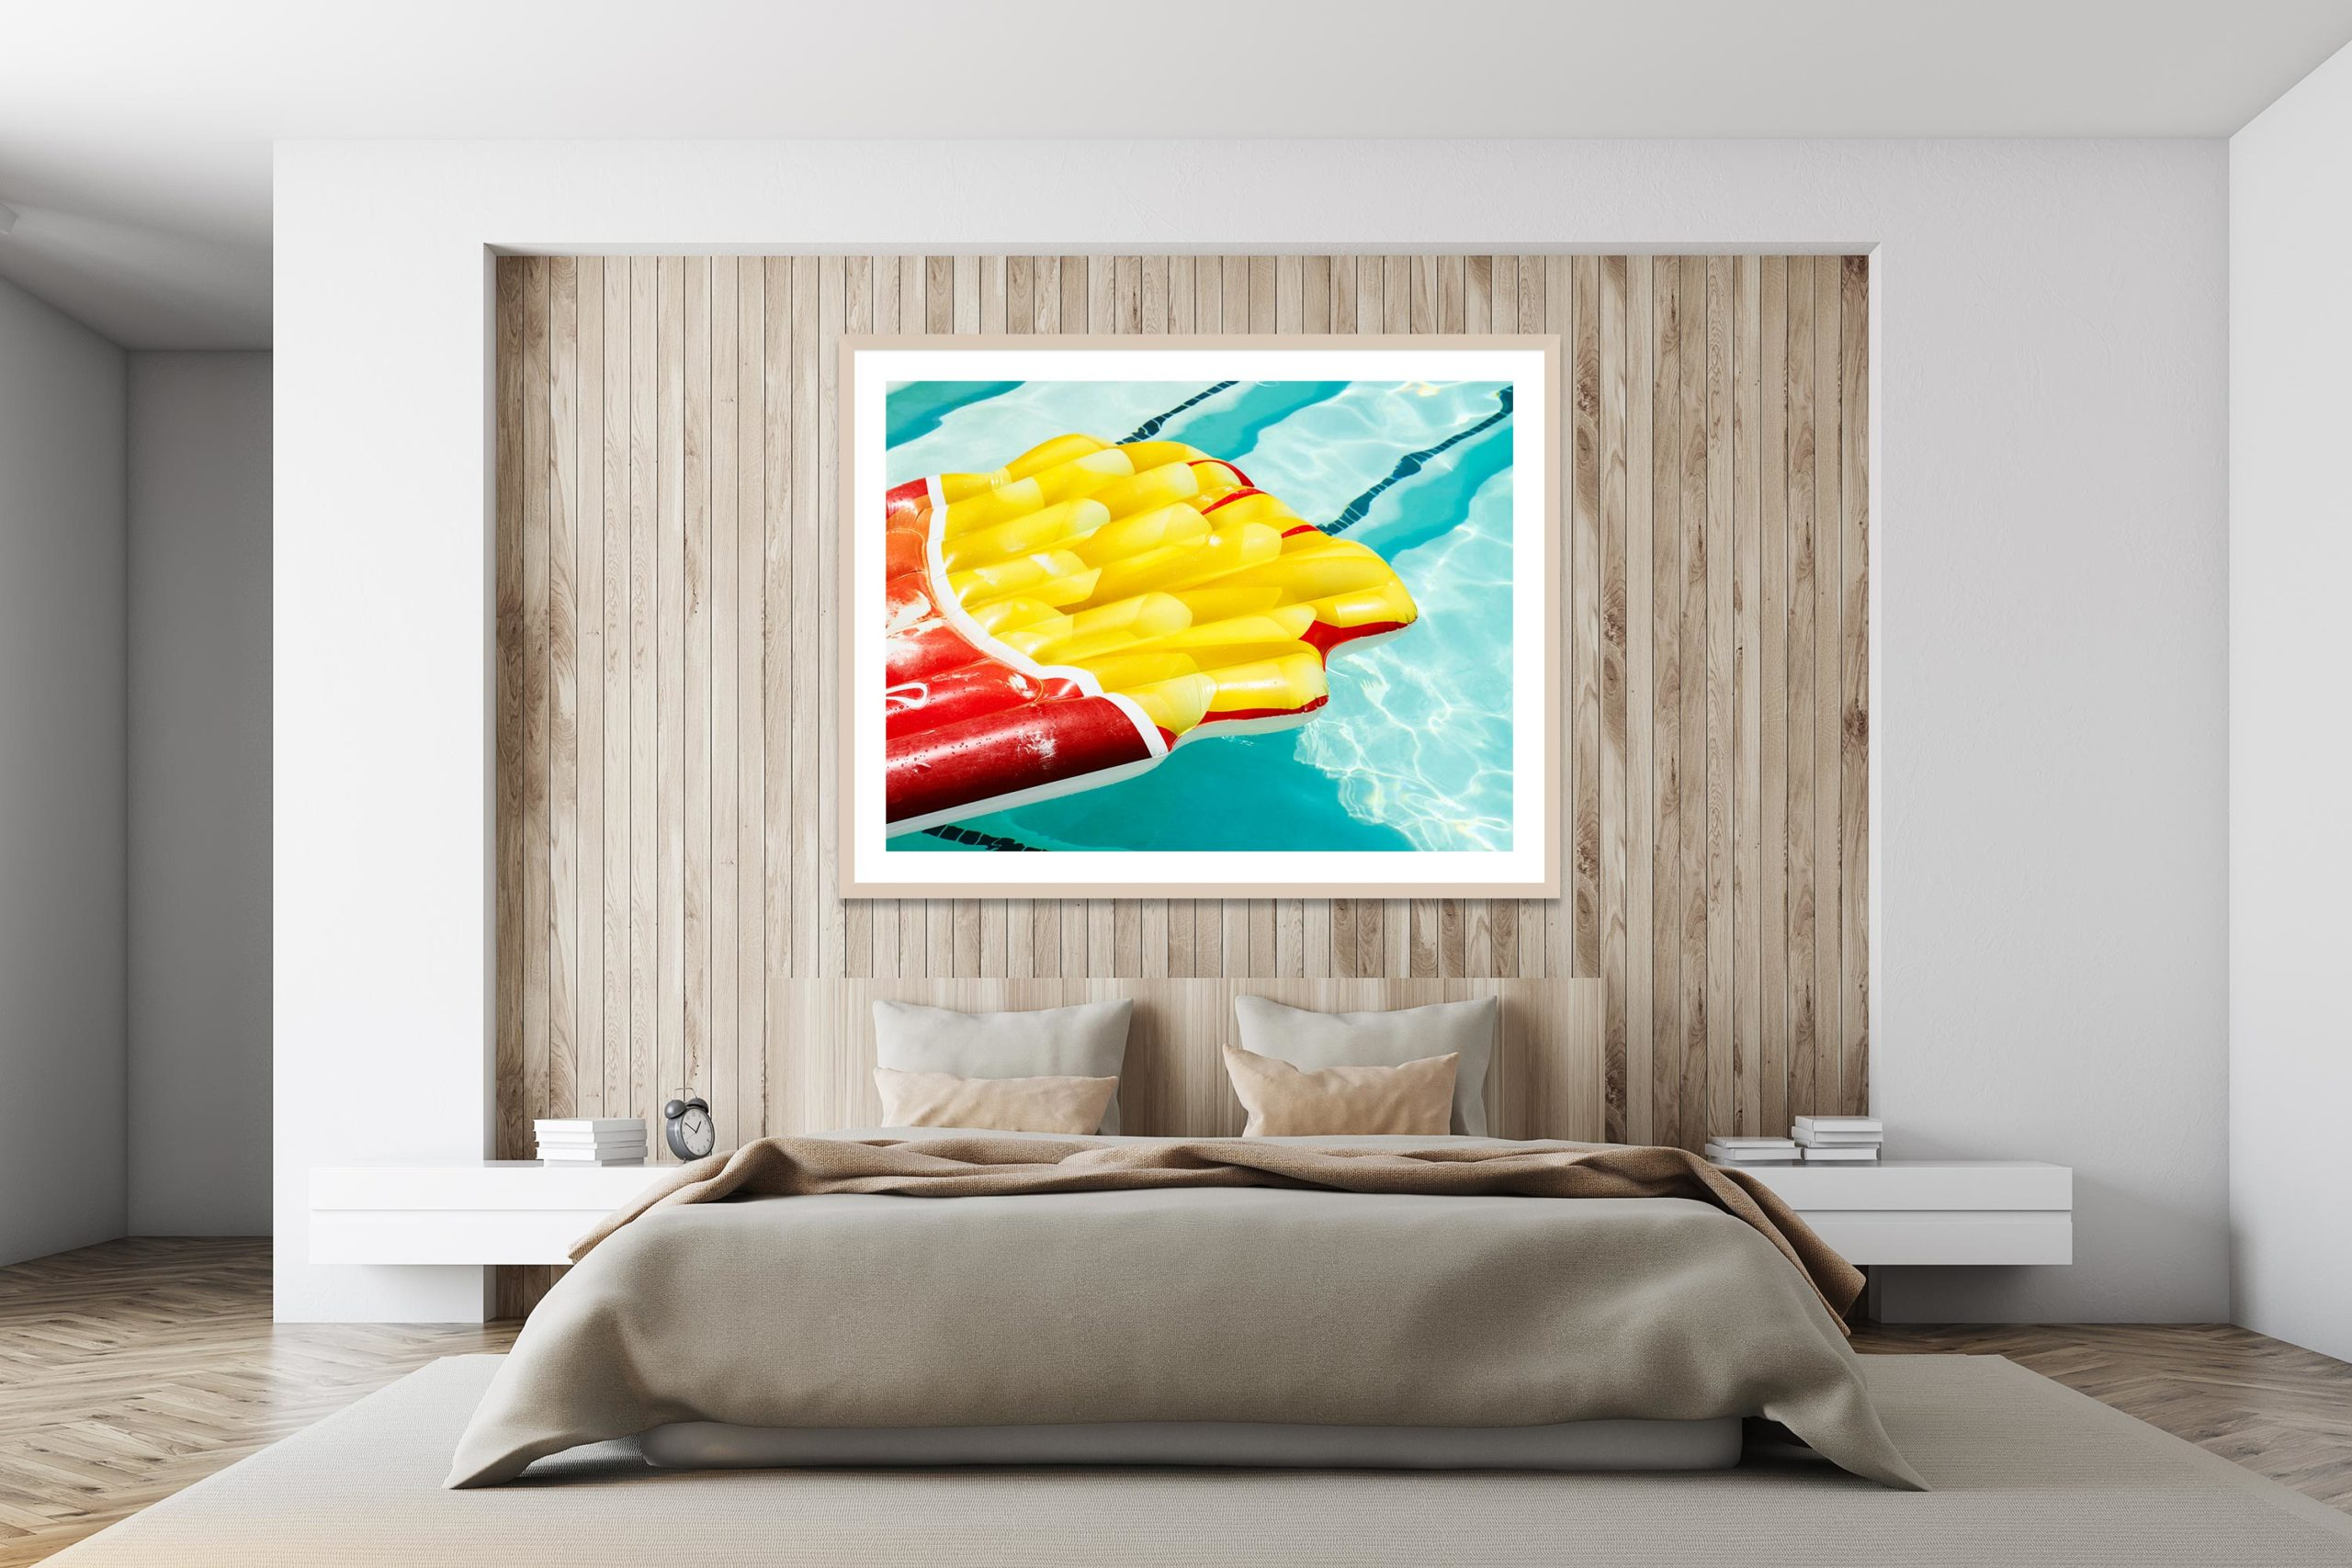 Fries - Timber Frame - I Heart Palm Springs Collection - Fine Art Photography by Toby Dixon